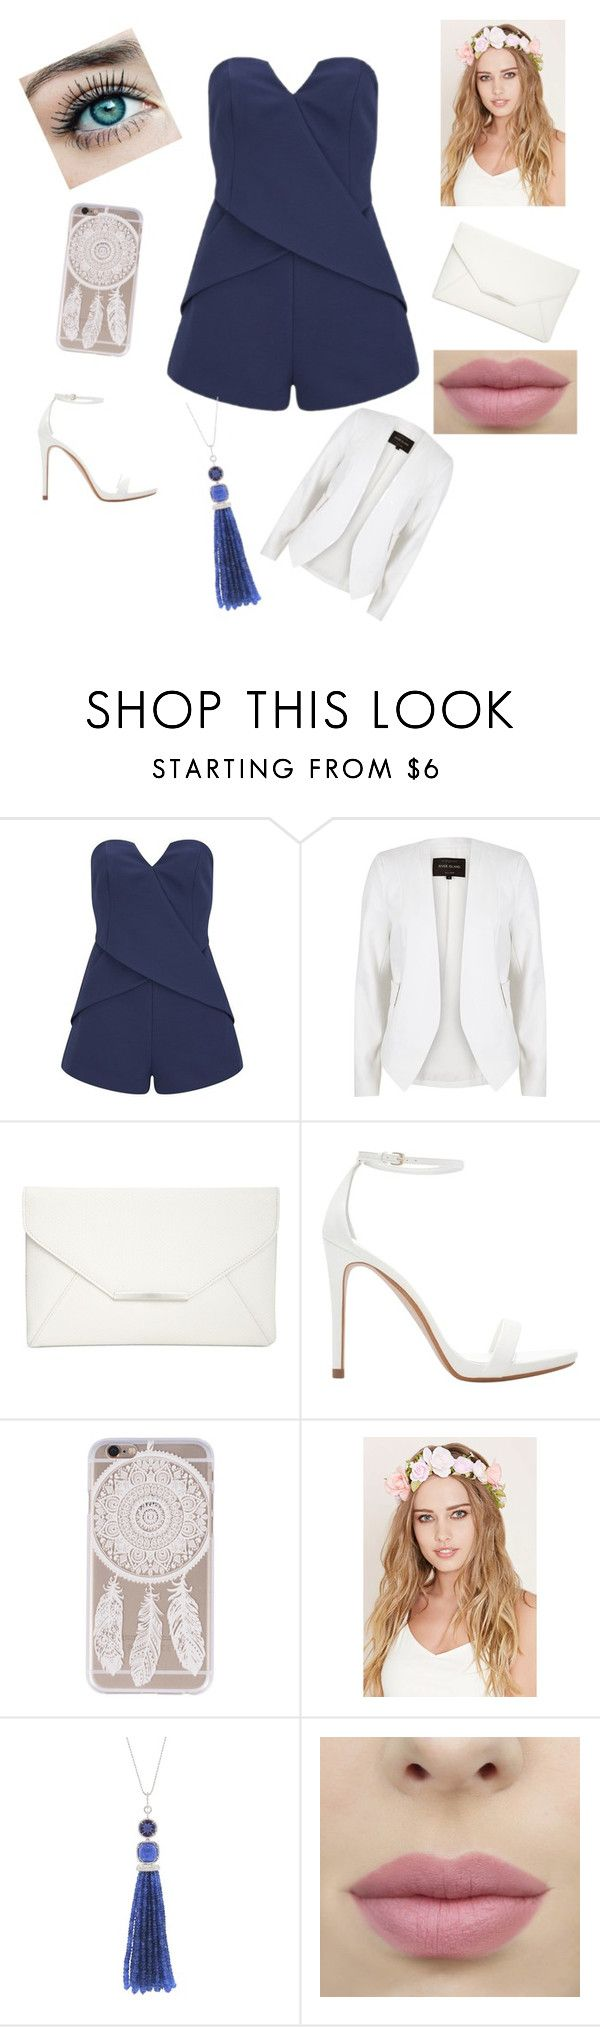 """""""Bleu et blanc"""" by frenchmode ❤ liked on Polyvore featuring Finders Keepers, River Island, Style & Co., Zara, Forever 21 and Sharon Khazzam"""